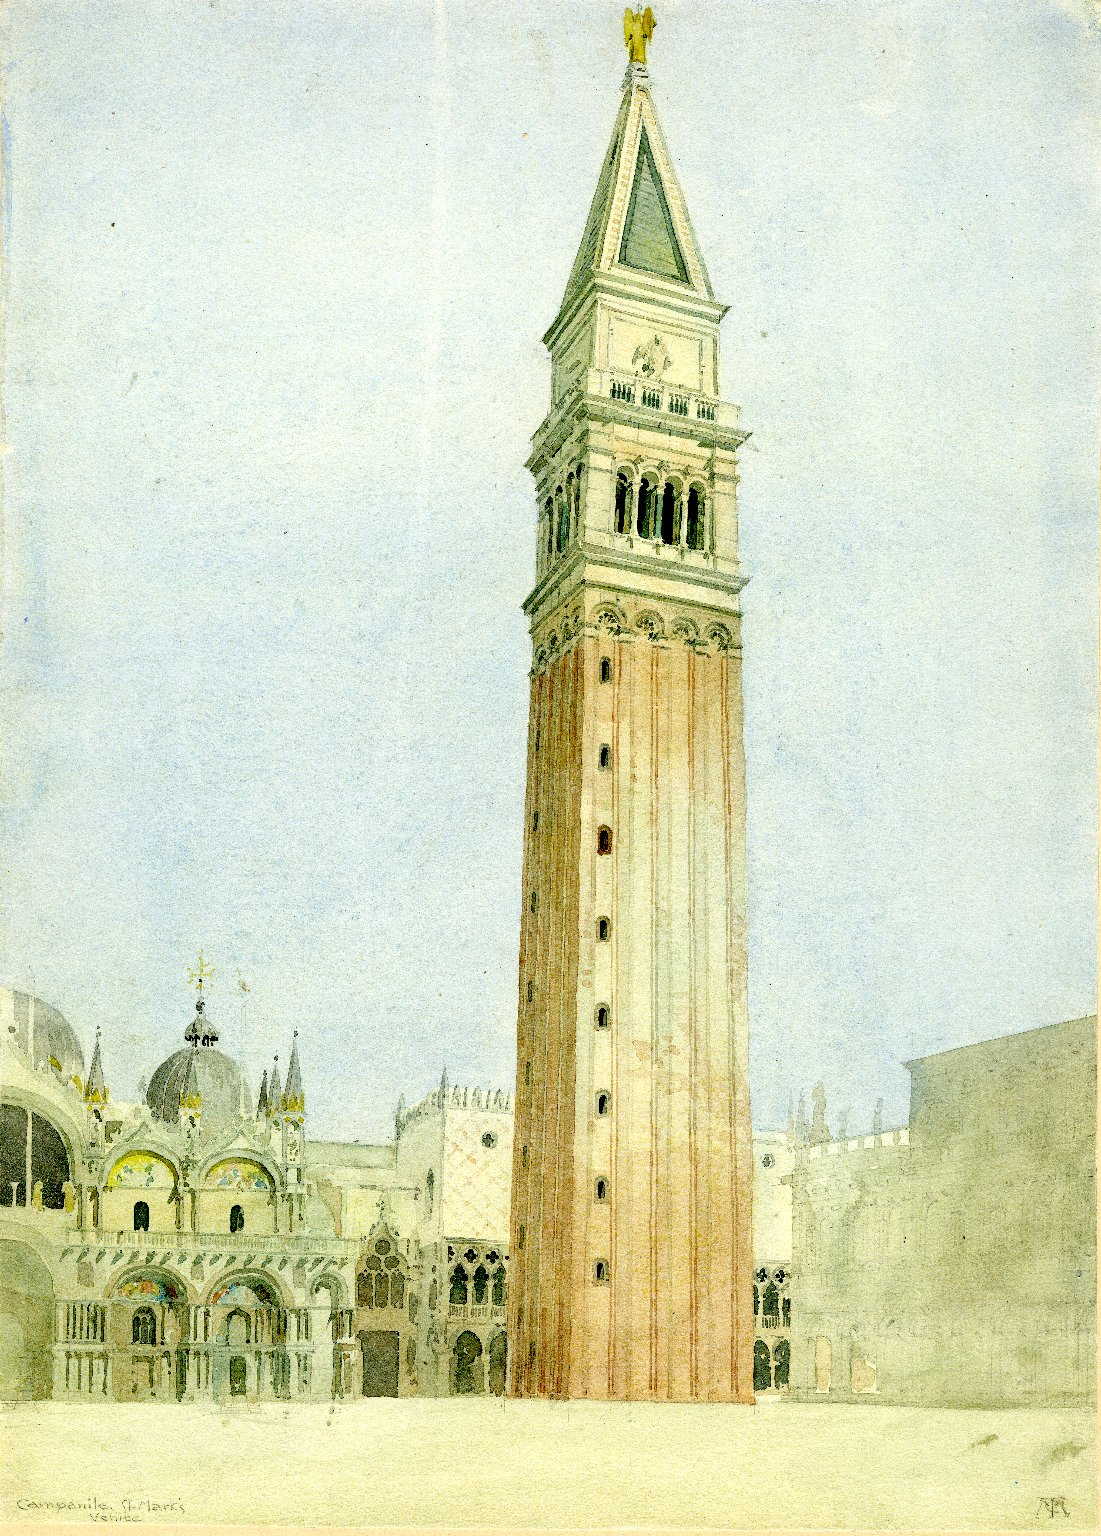 Campanile at St. Mark's Basilica